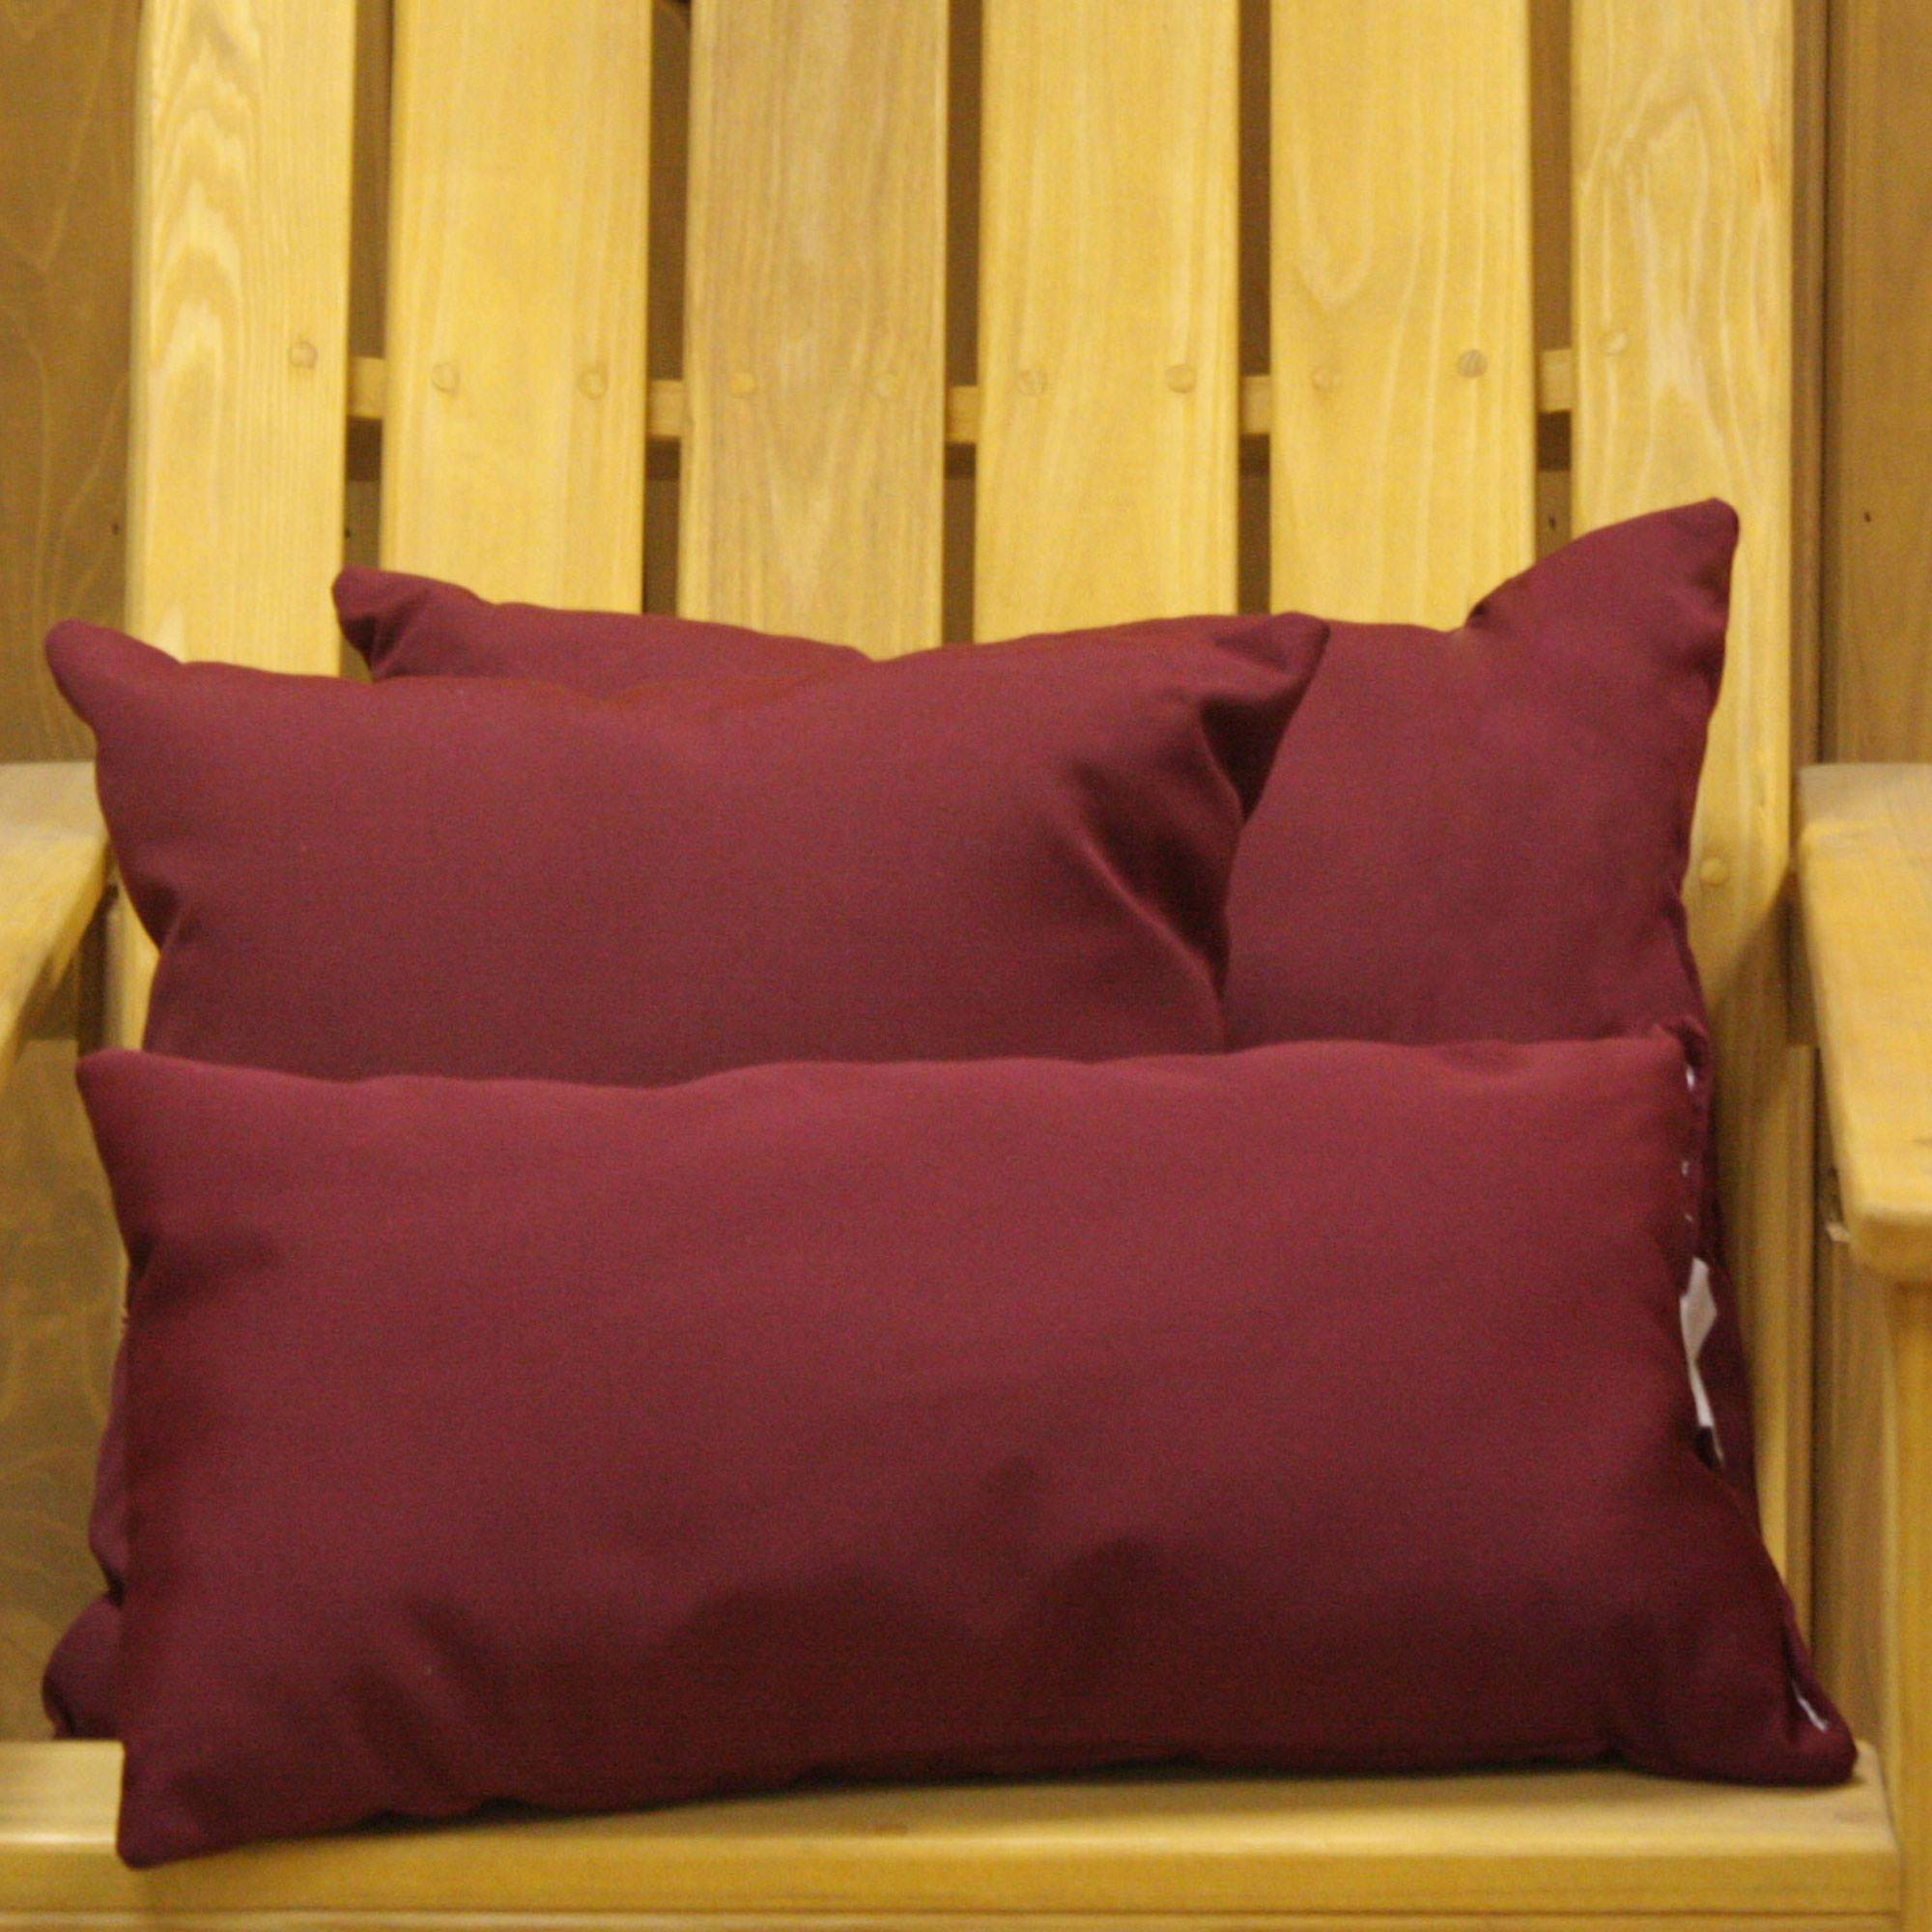 Throw Pillows For Burgundy Couch : Burgundy Sunbrella Outdoor Throw Pillow DFOHome